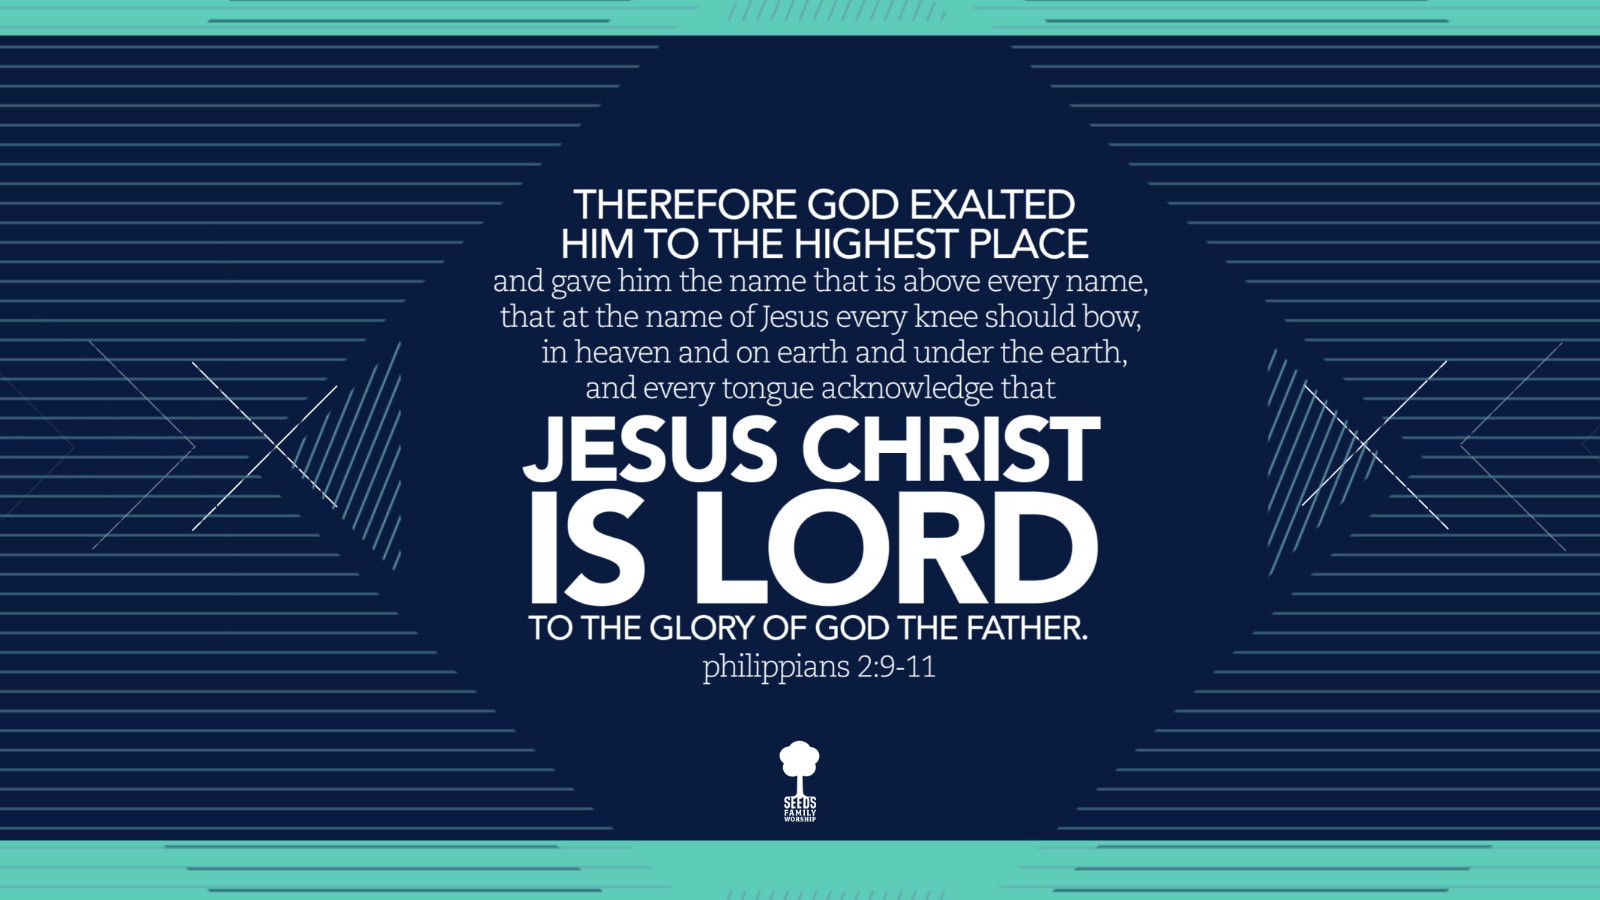 Jesus Christ is Lord (Philippians 2:9-11)